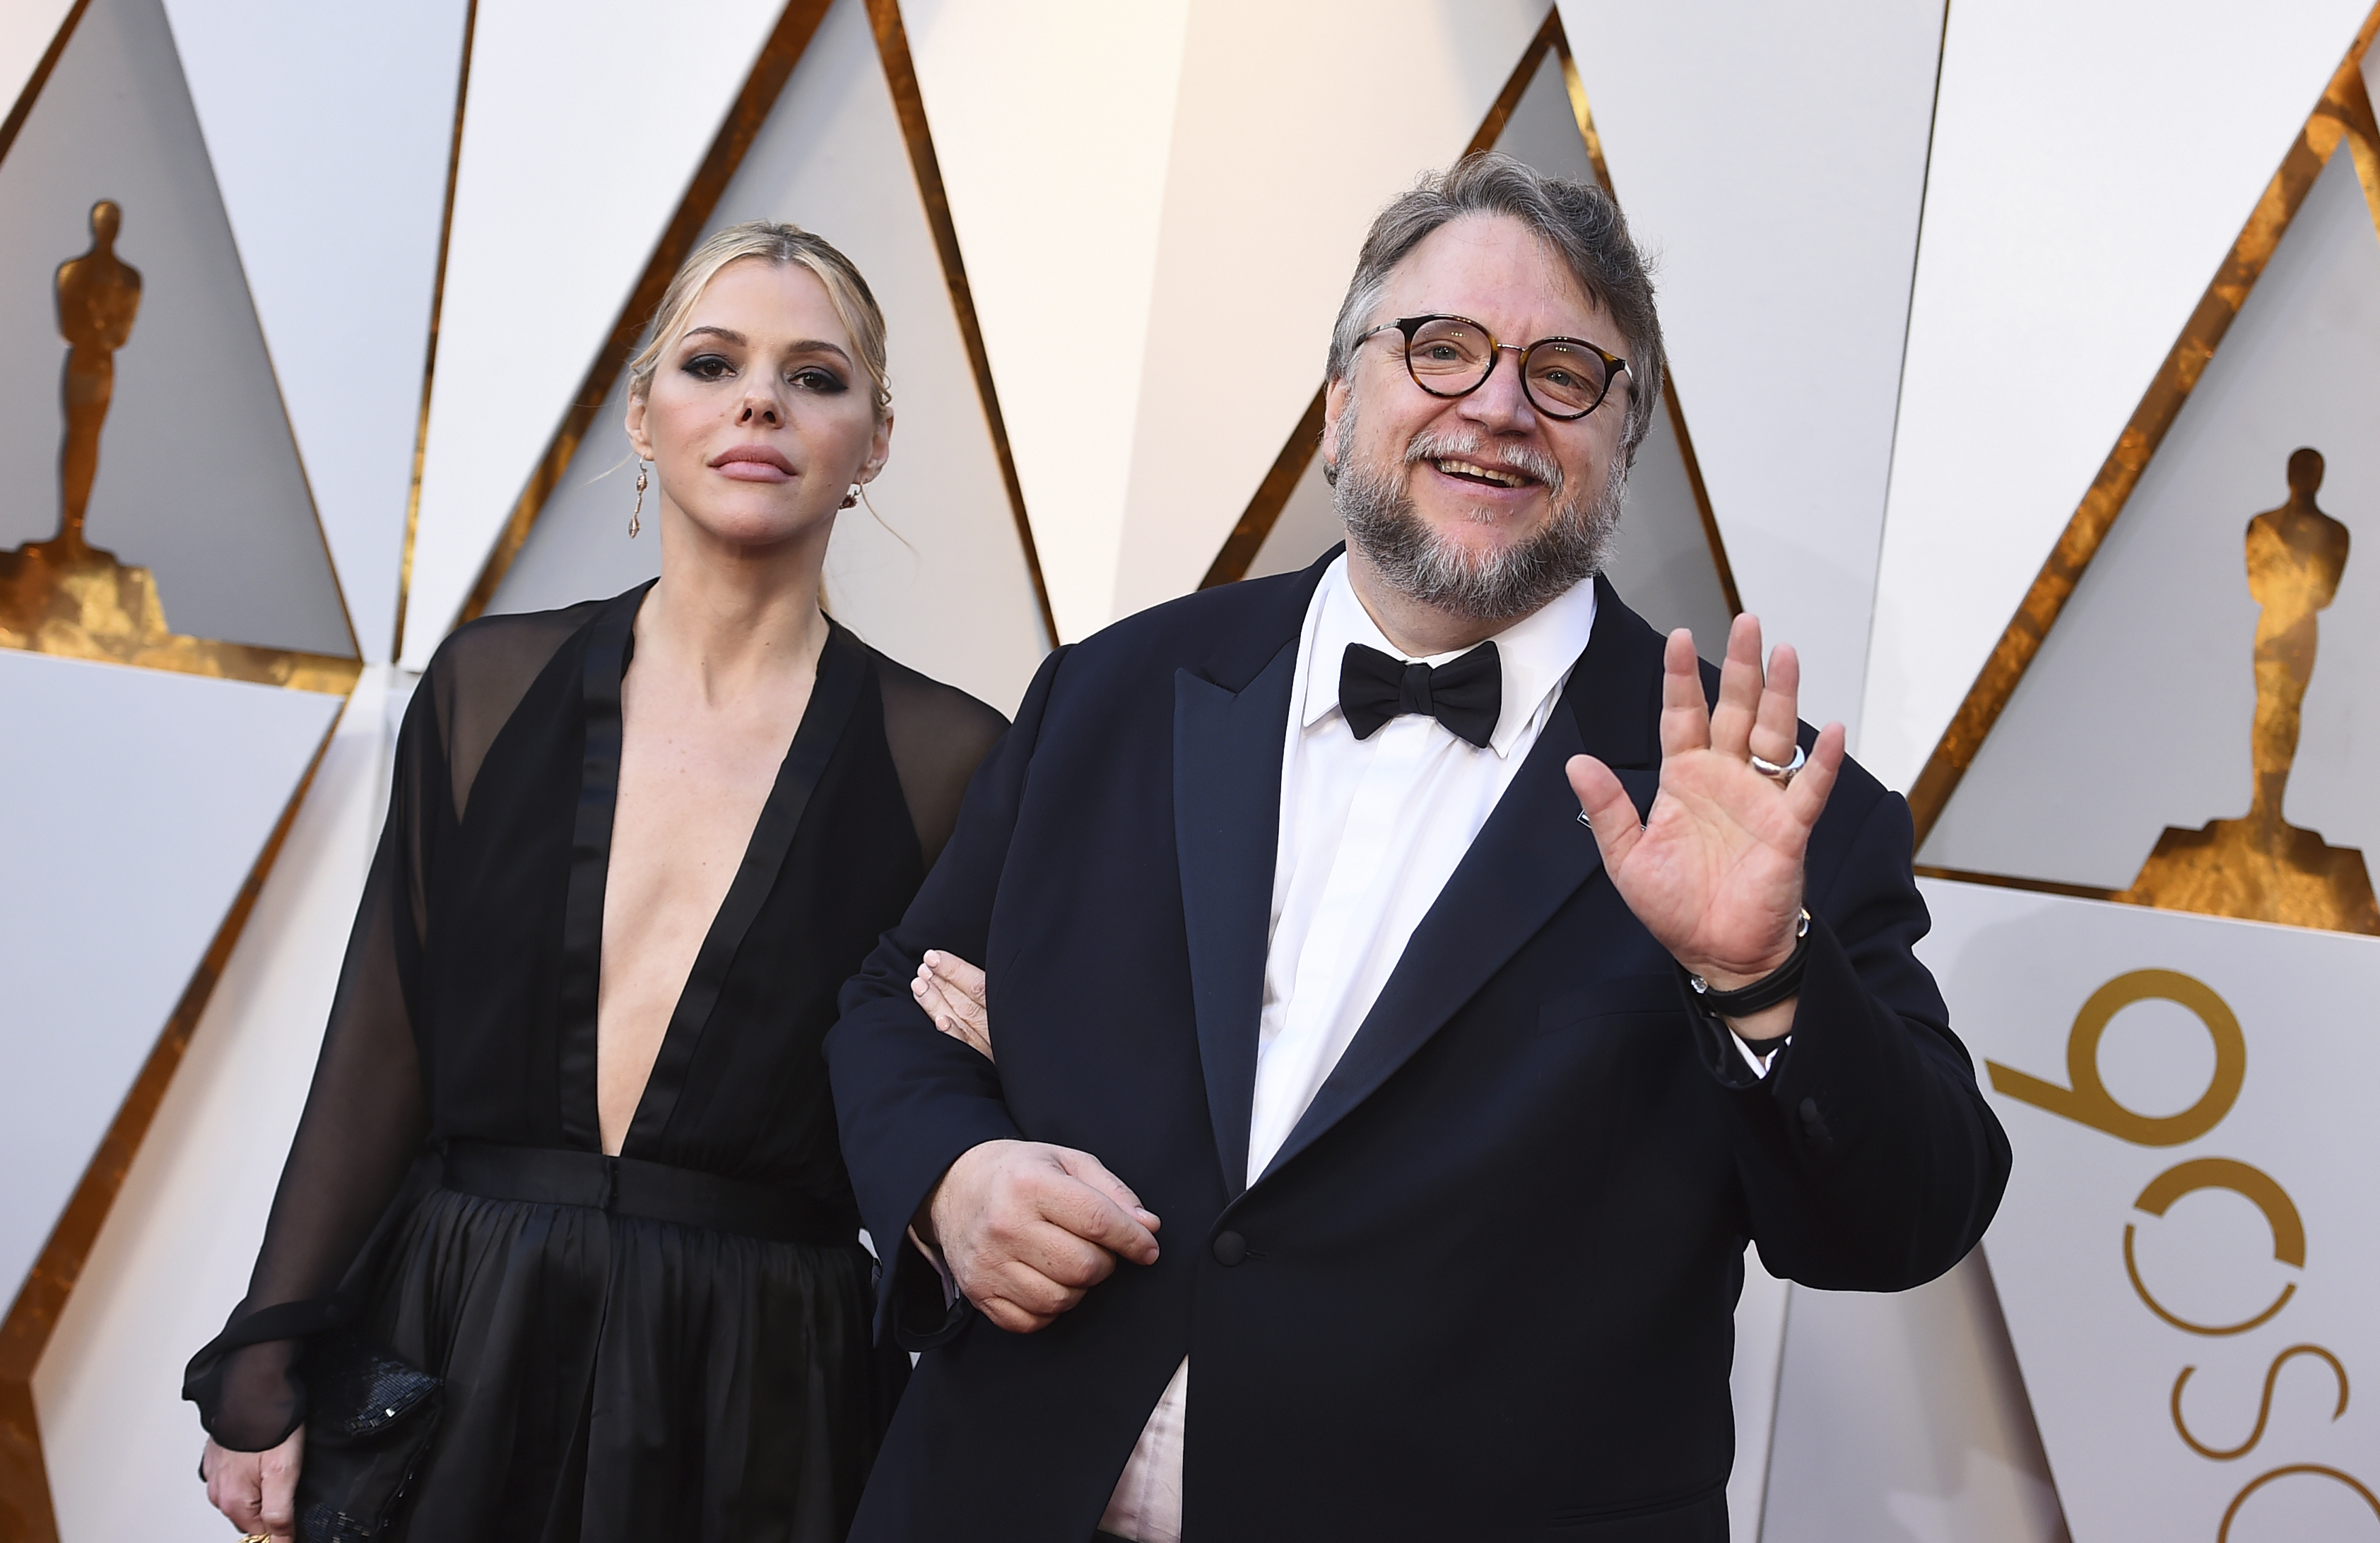 "<div class=""meta image-caption""><div class=""origin-logo origin-image none""><span>none</span></div><span class=""caption-text"">Kim Morgan, left, and Guillermo del Toro (nominated for Best Director for ''The Shape of Water'') arrive at the Oscars. (Jordan Strauss/Invision/AP)</span></div>"